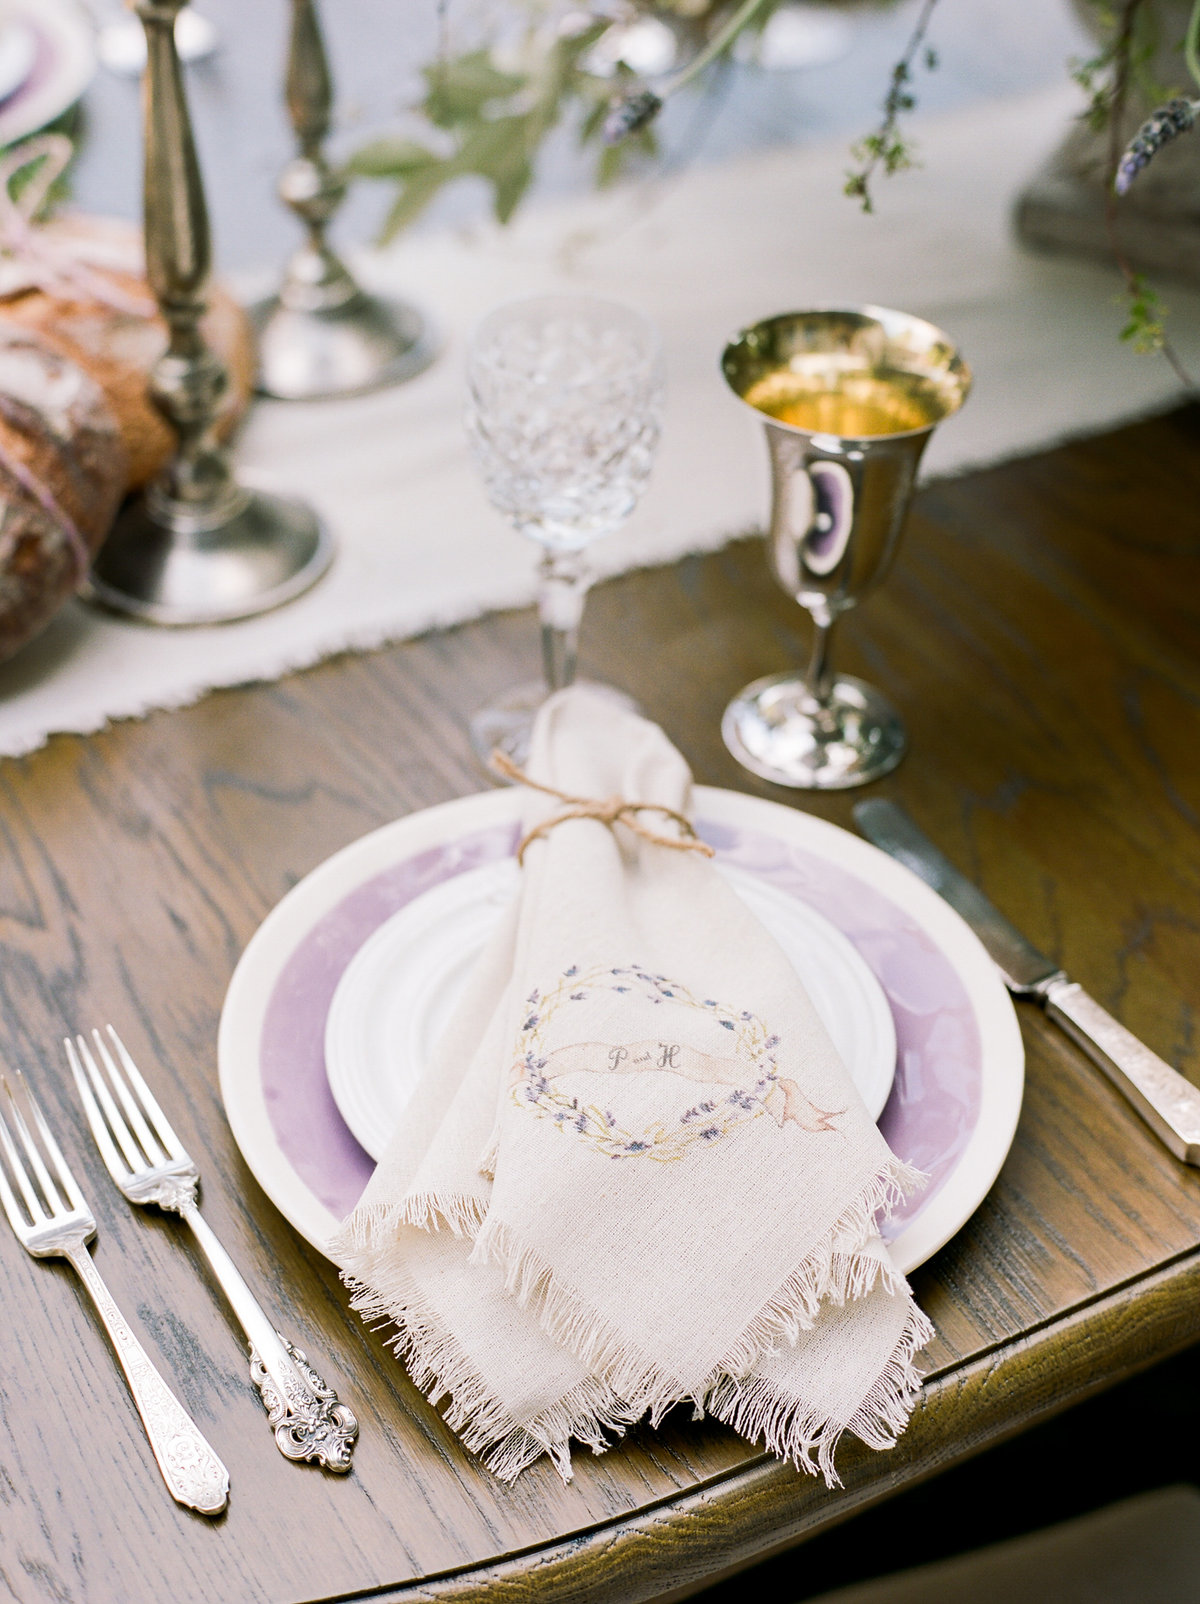 MelissaSchollaert-FrenchTable-05